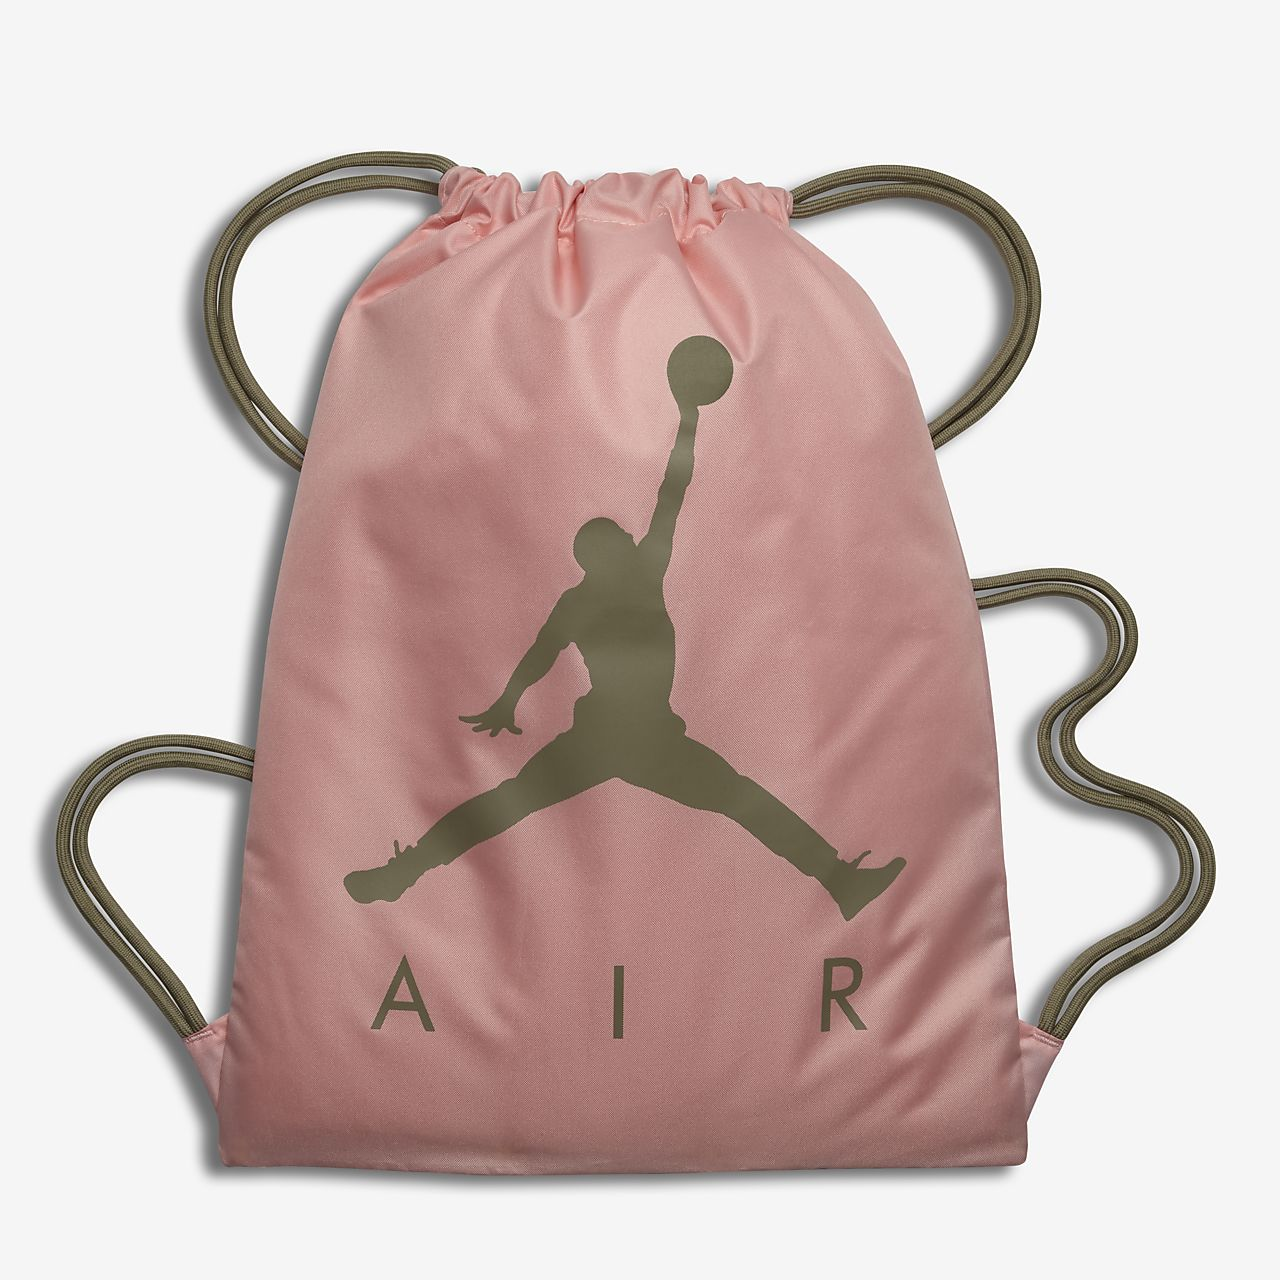 Air Jordan Gymtas